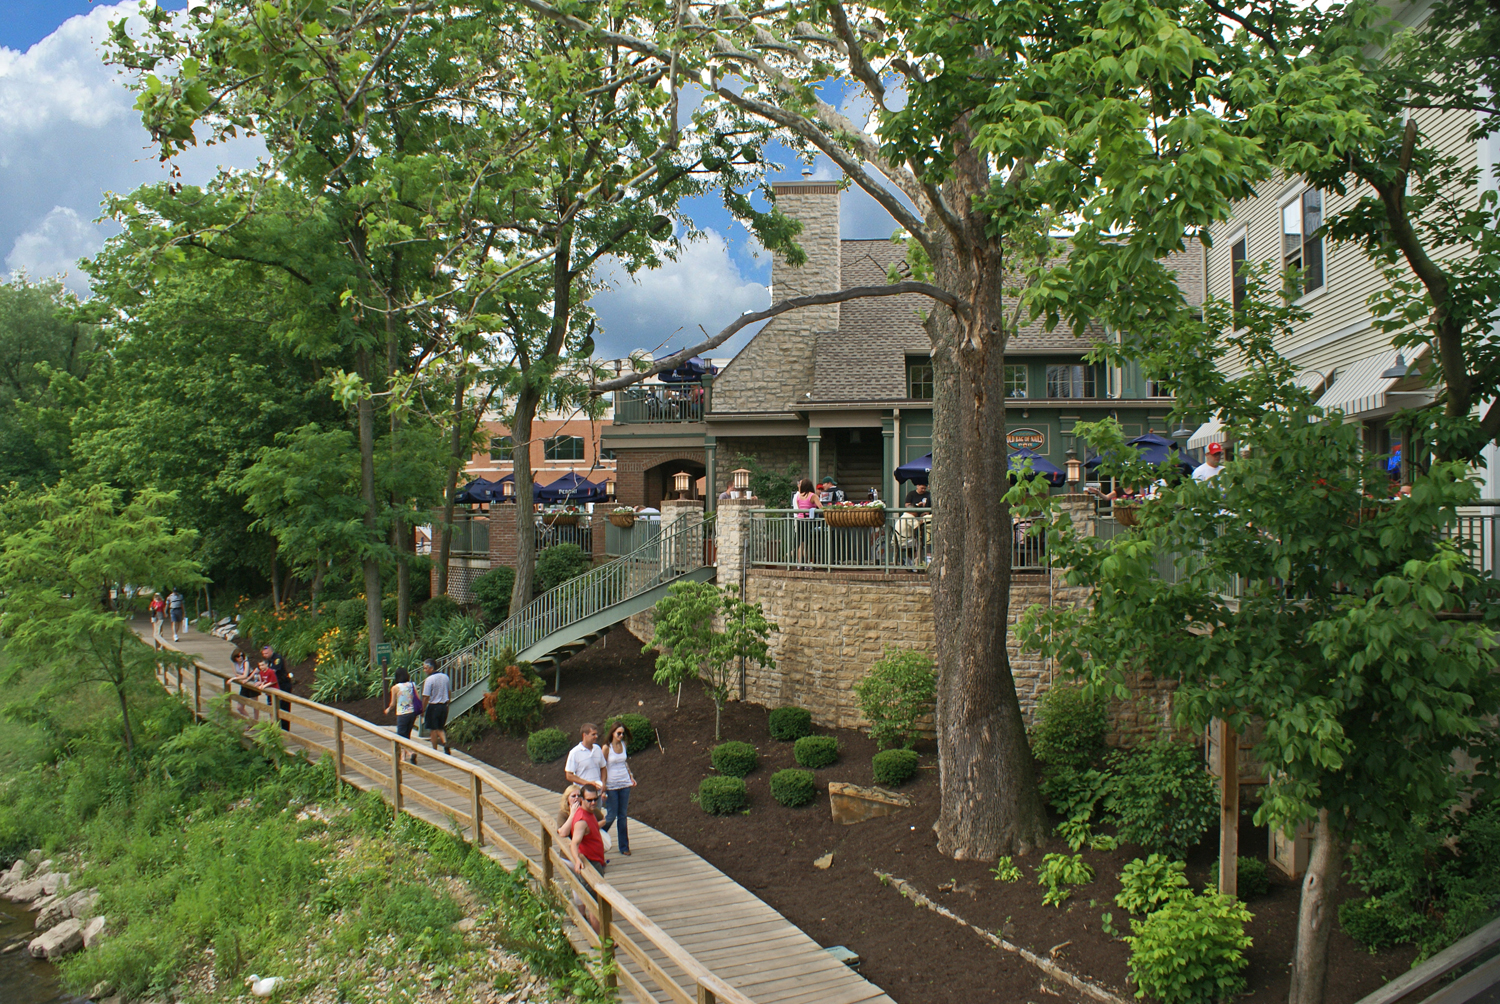 Creekside Park (courtesy of Gahanna Convention & Visitors Bureau)